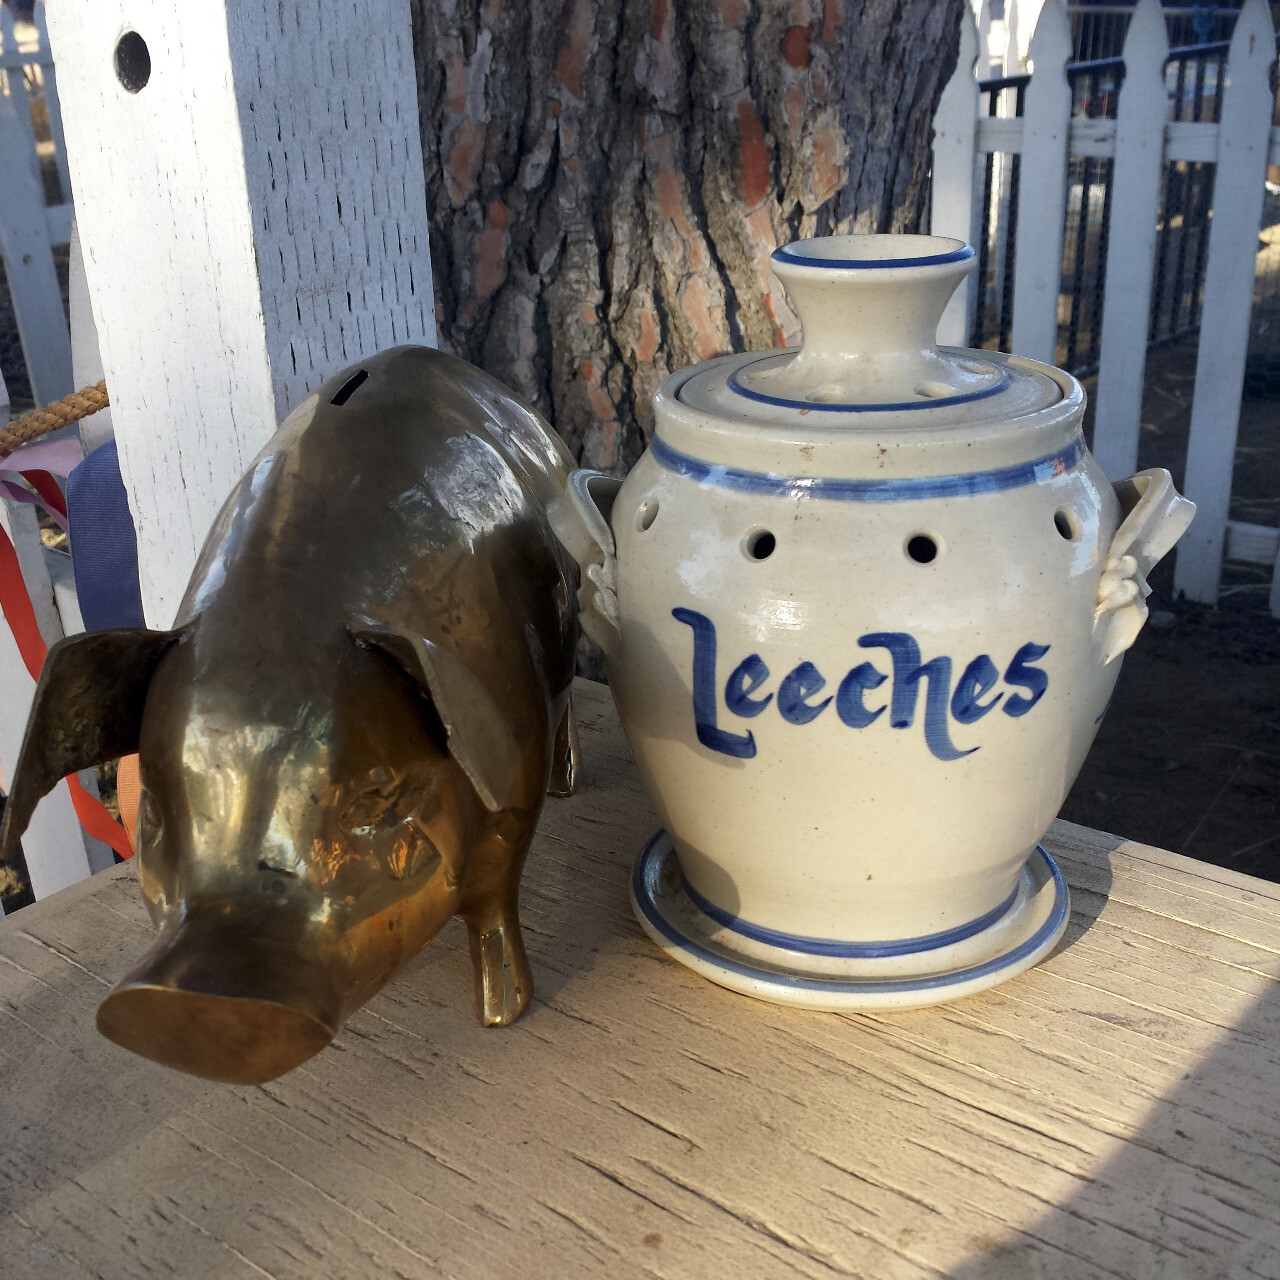 Ceramic jar labeled Leeches on a shelf next to a bronze(?) statue of a pig.